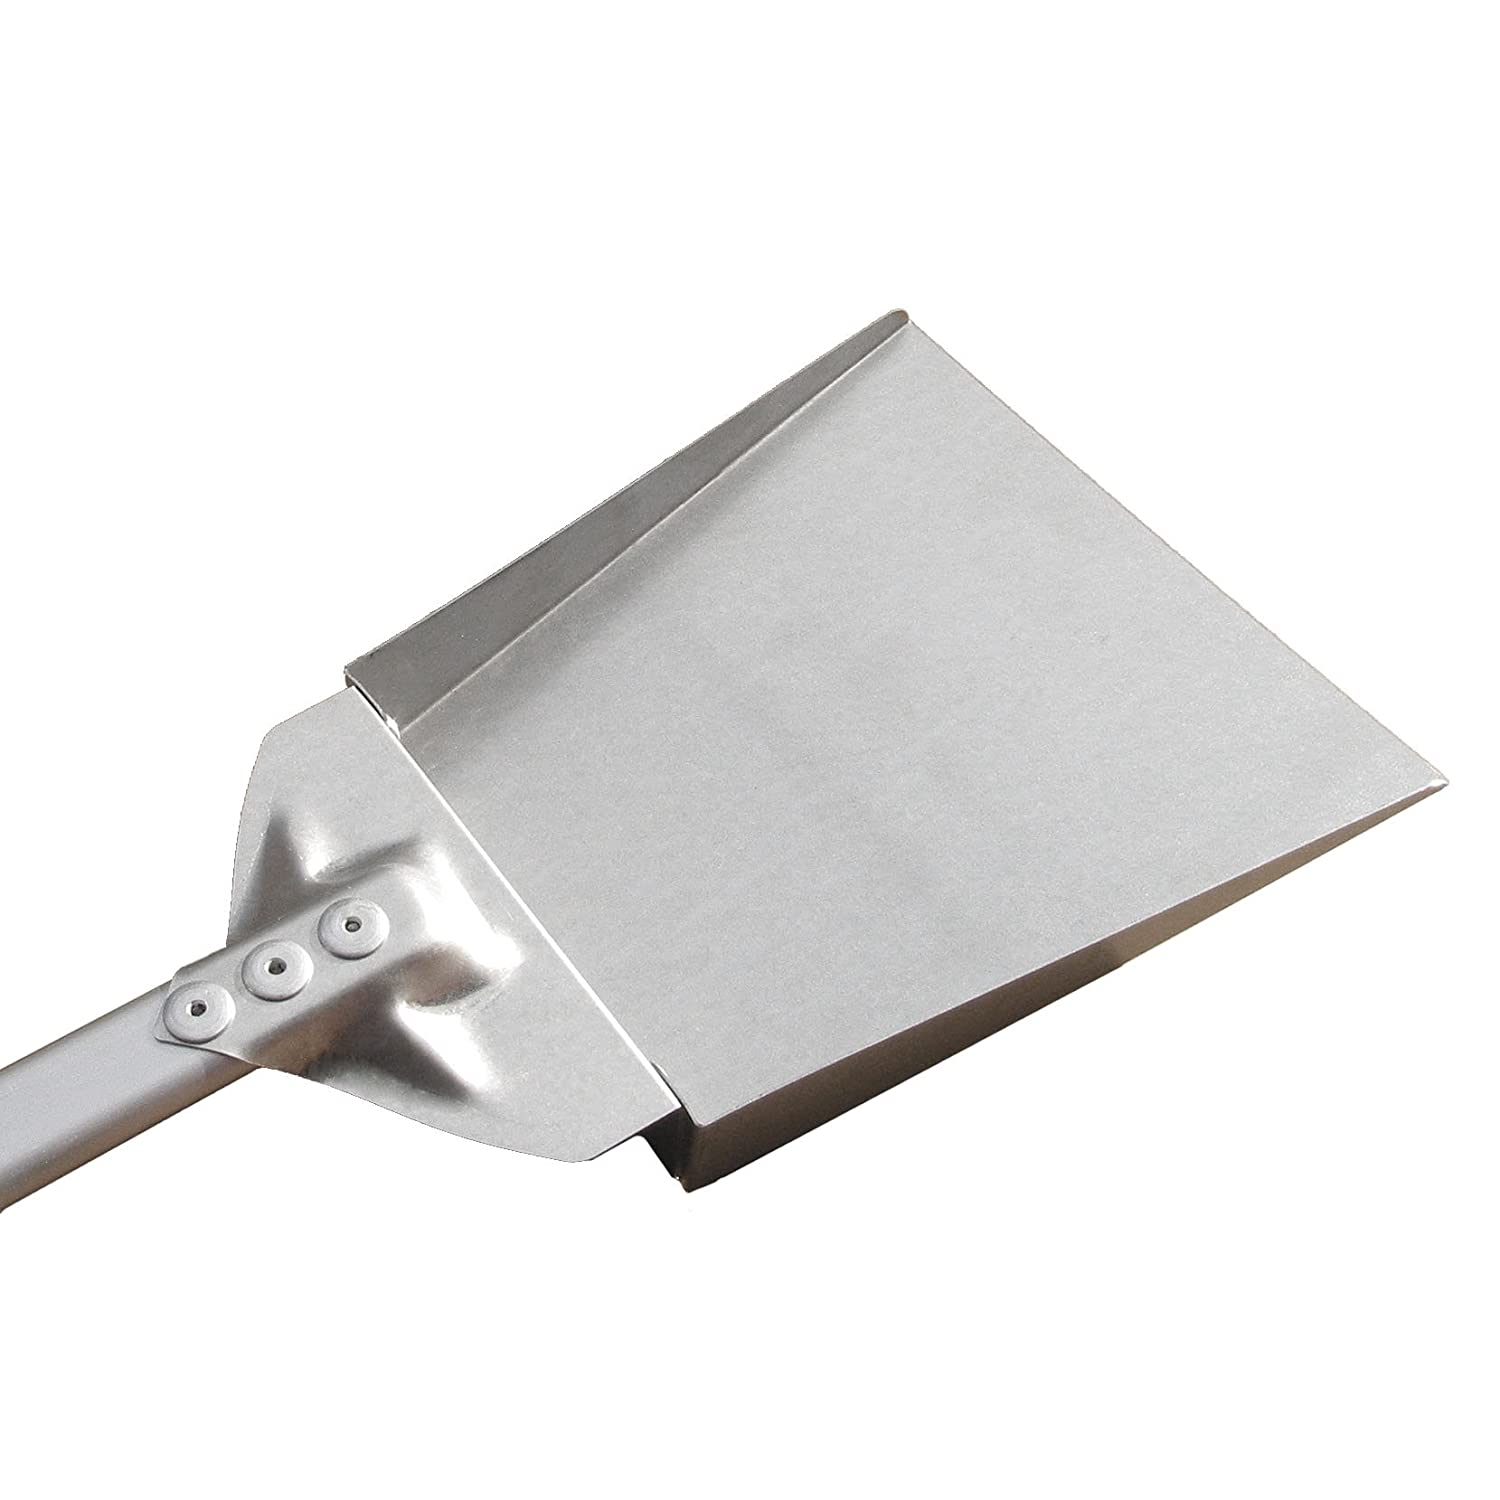 Ash Shovel - Galvanized Steel with Aluminum Handle